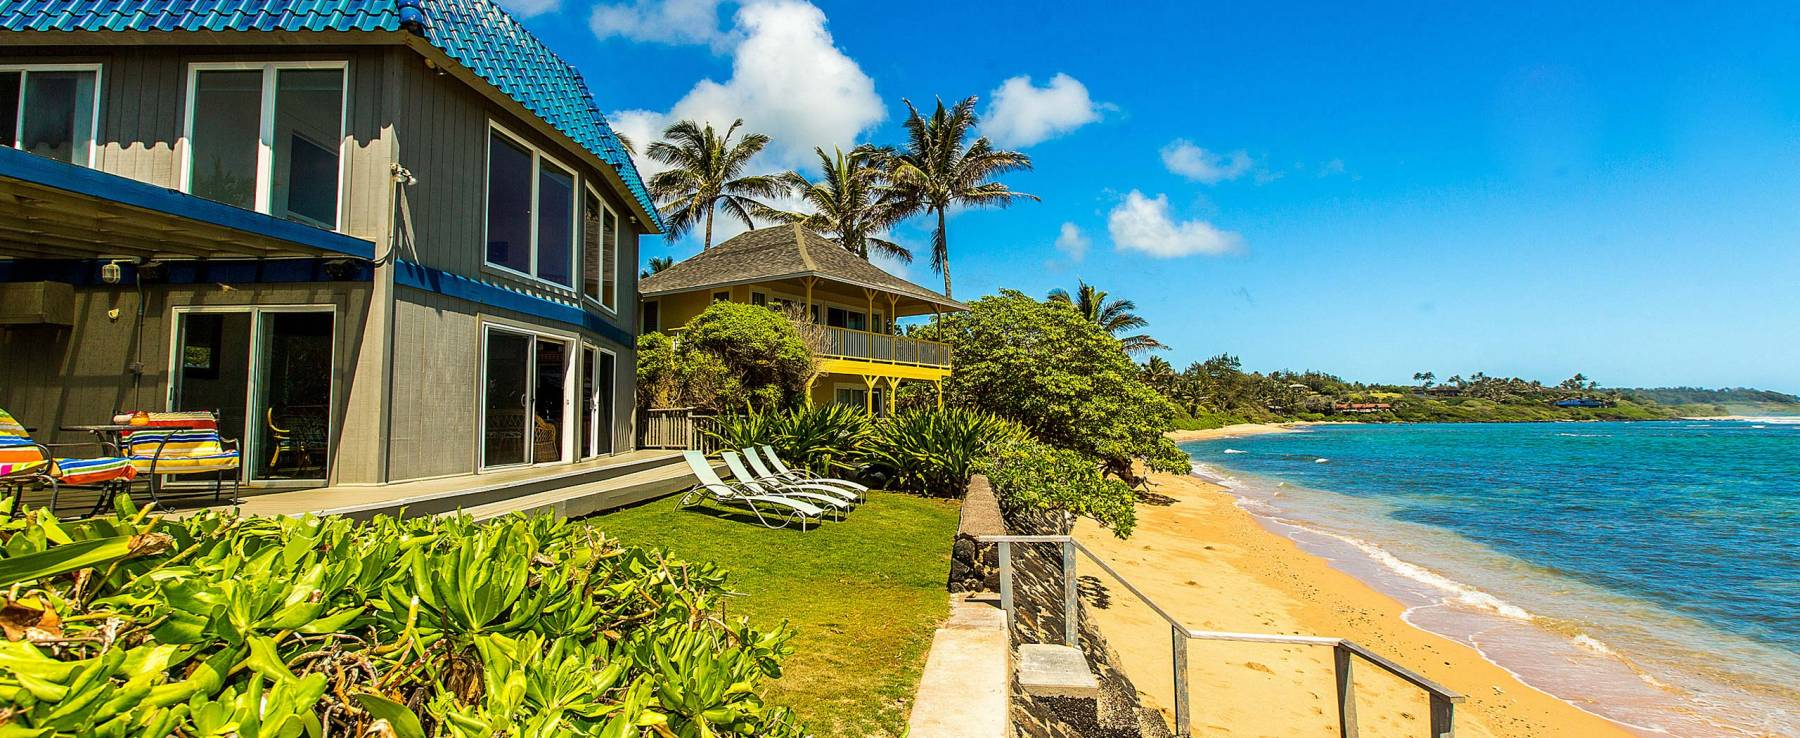 Vacation Rentals On Kauai, Hawaii